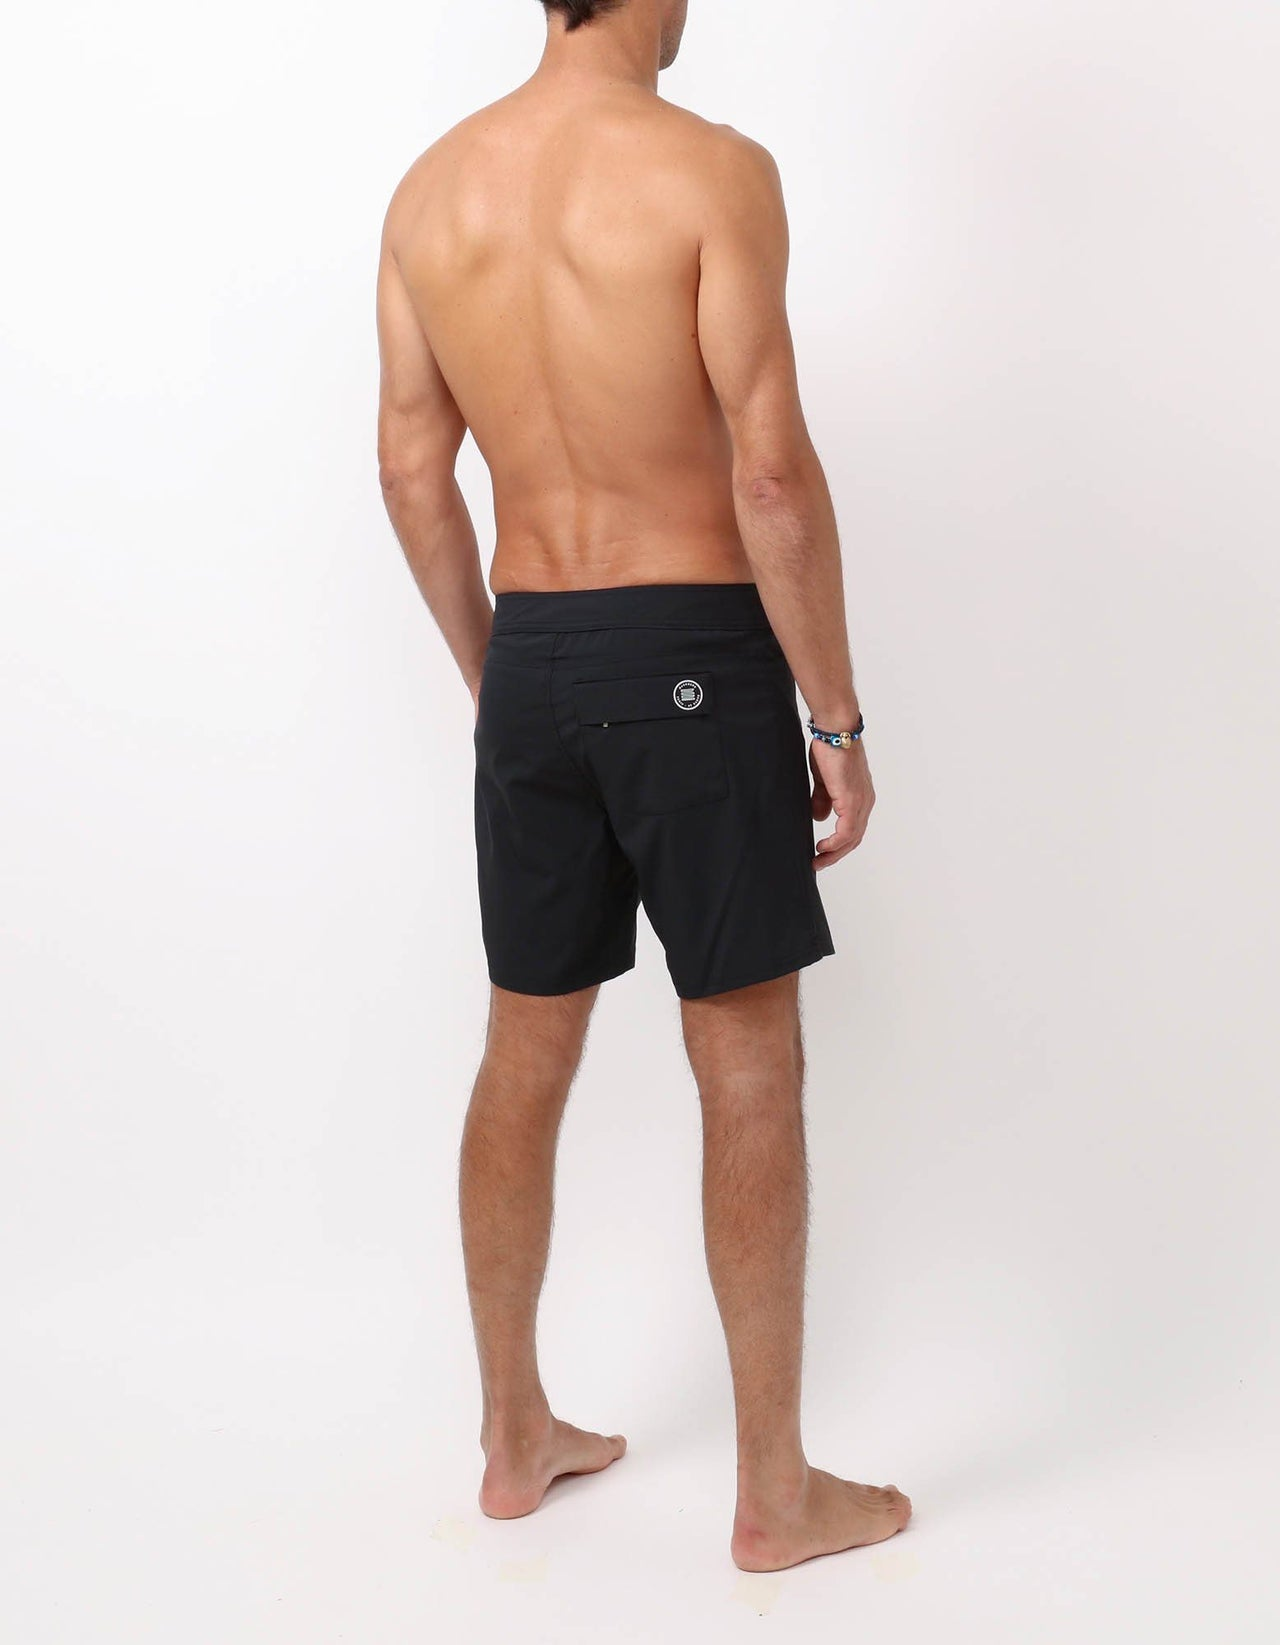 Barth4 - 00. Black Swim Shorts - Barth4 MACKEENE